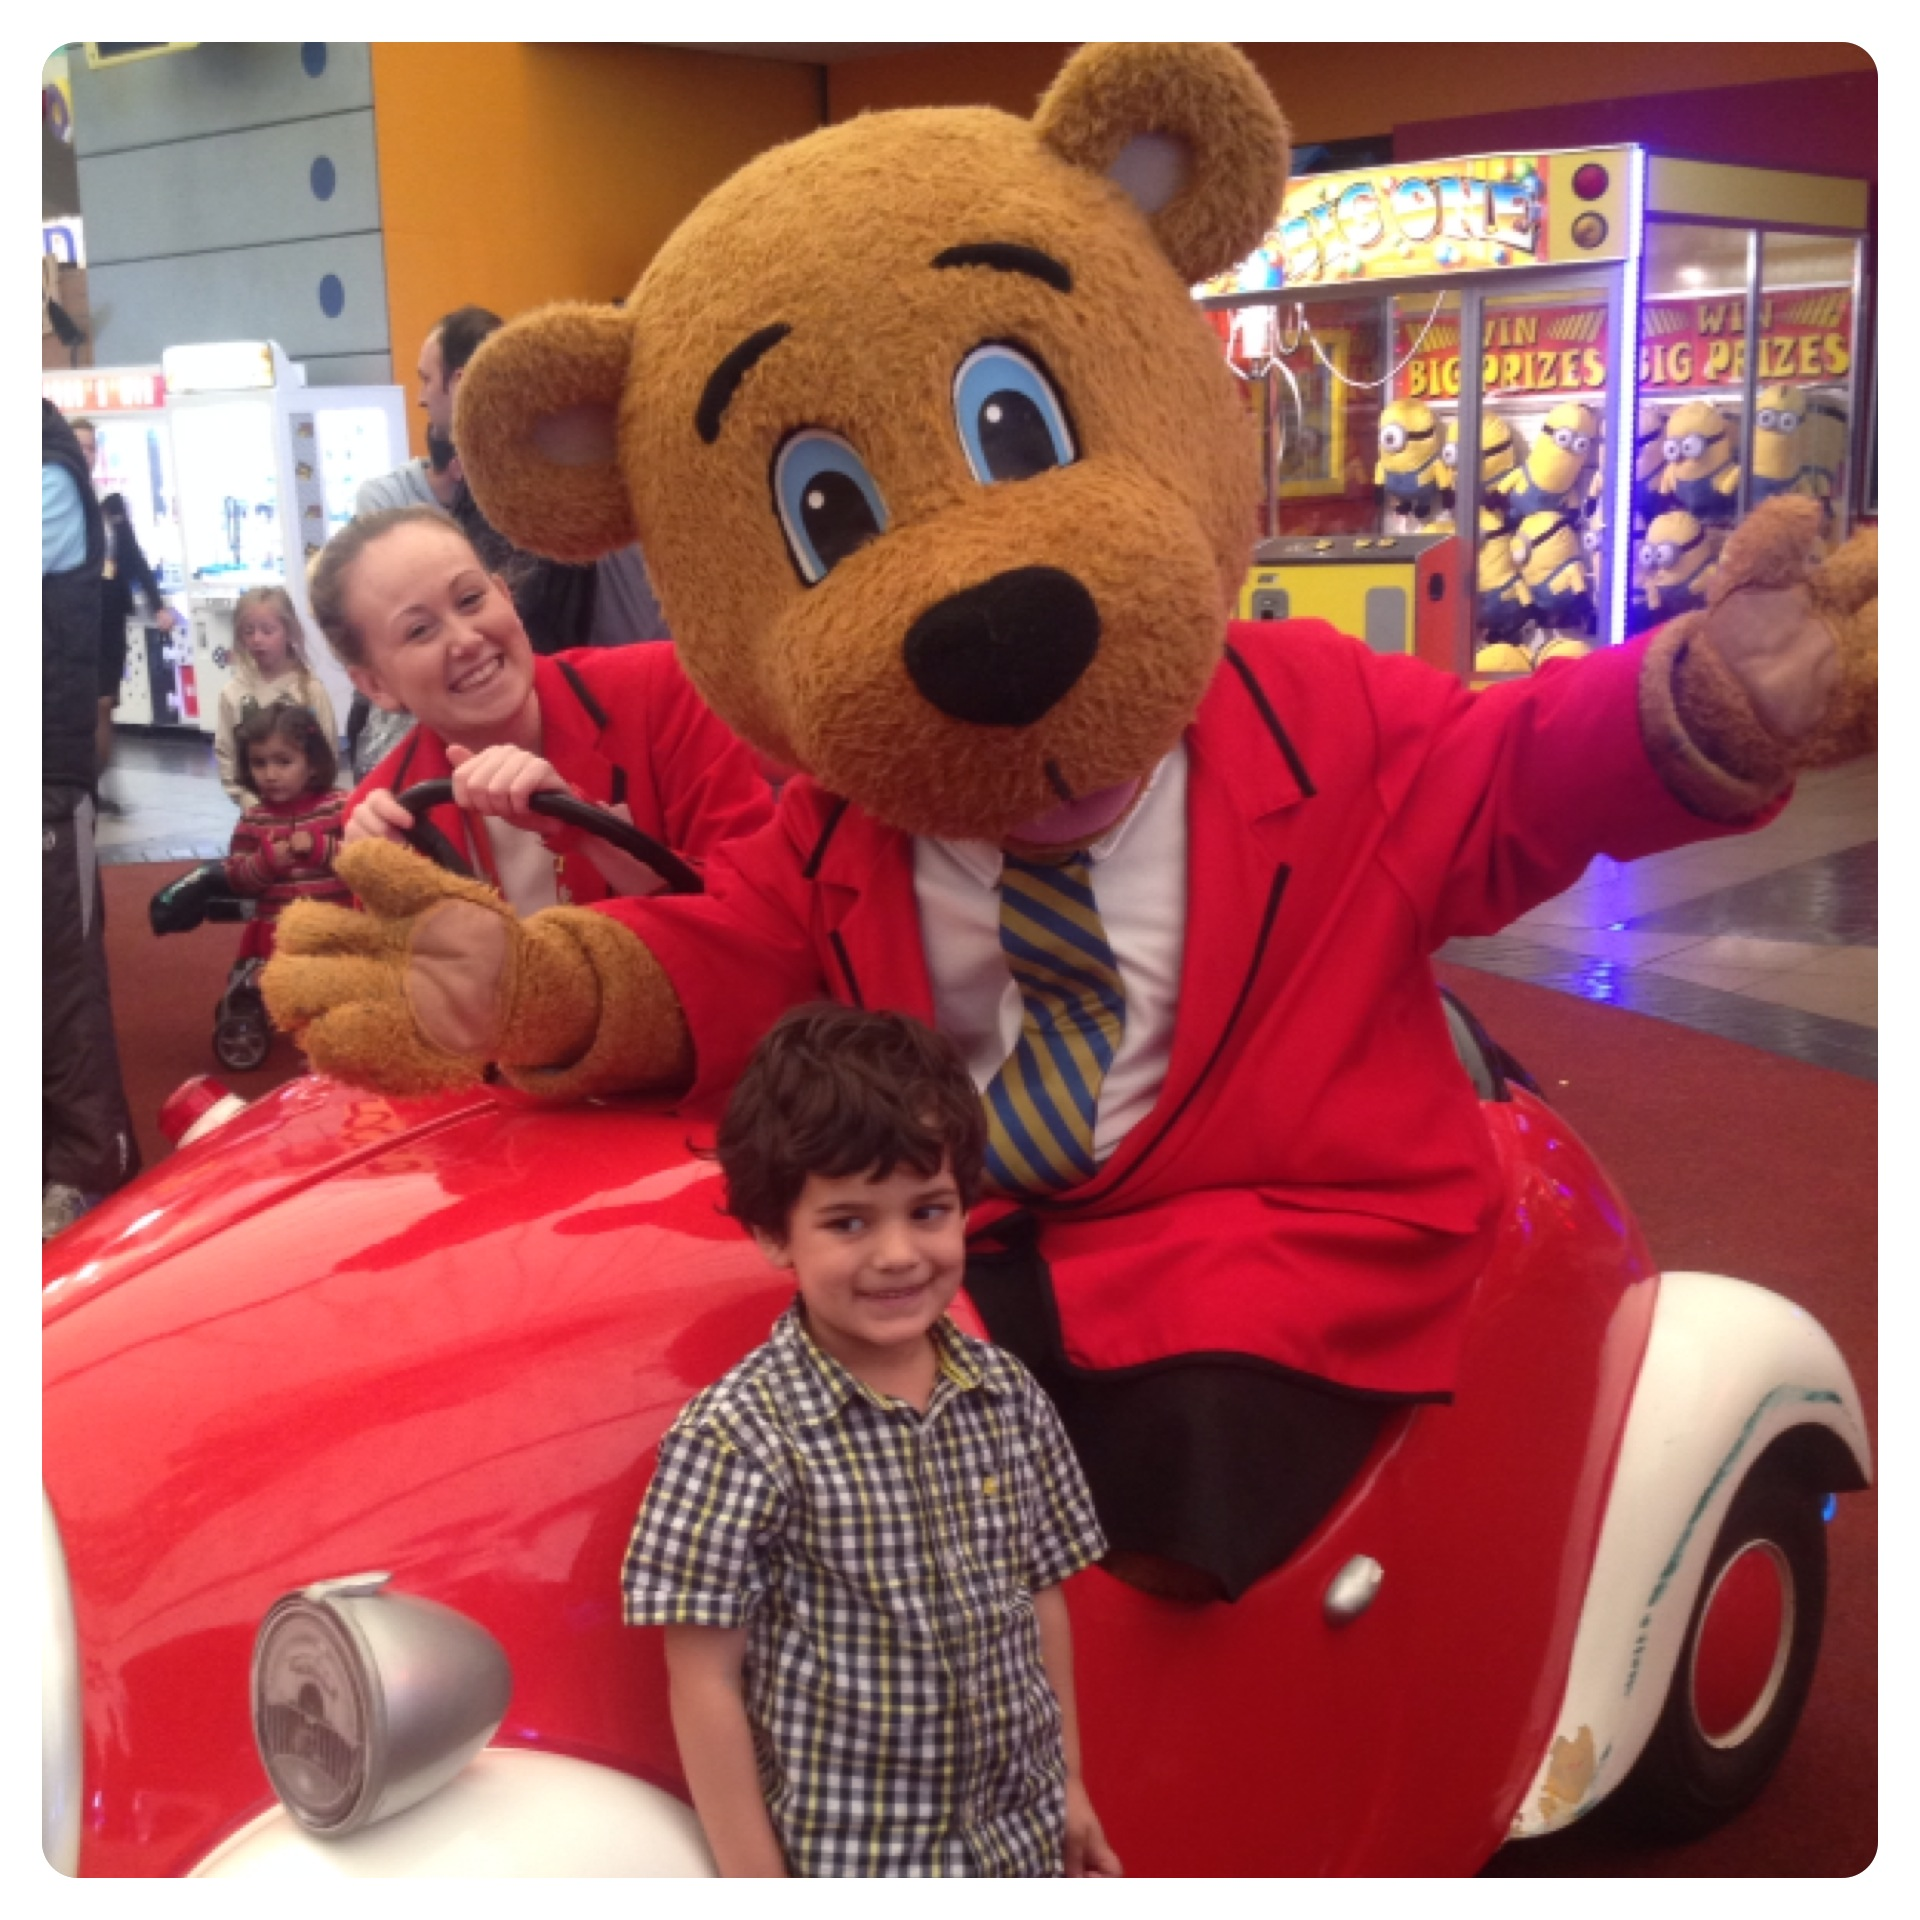 Billy the Bear at Butlins